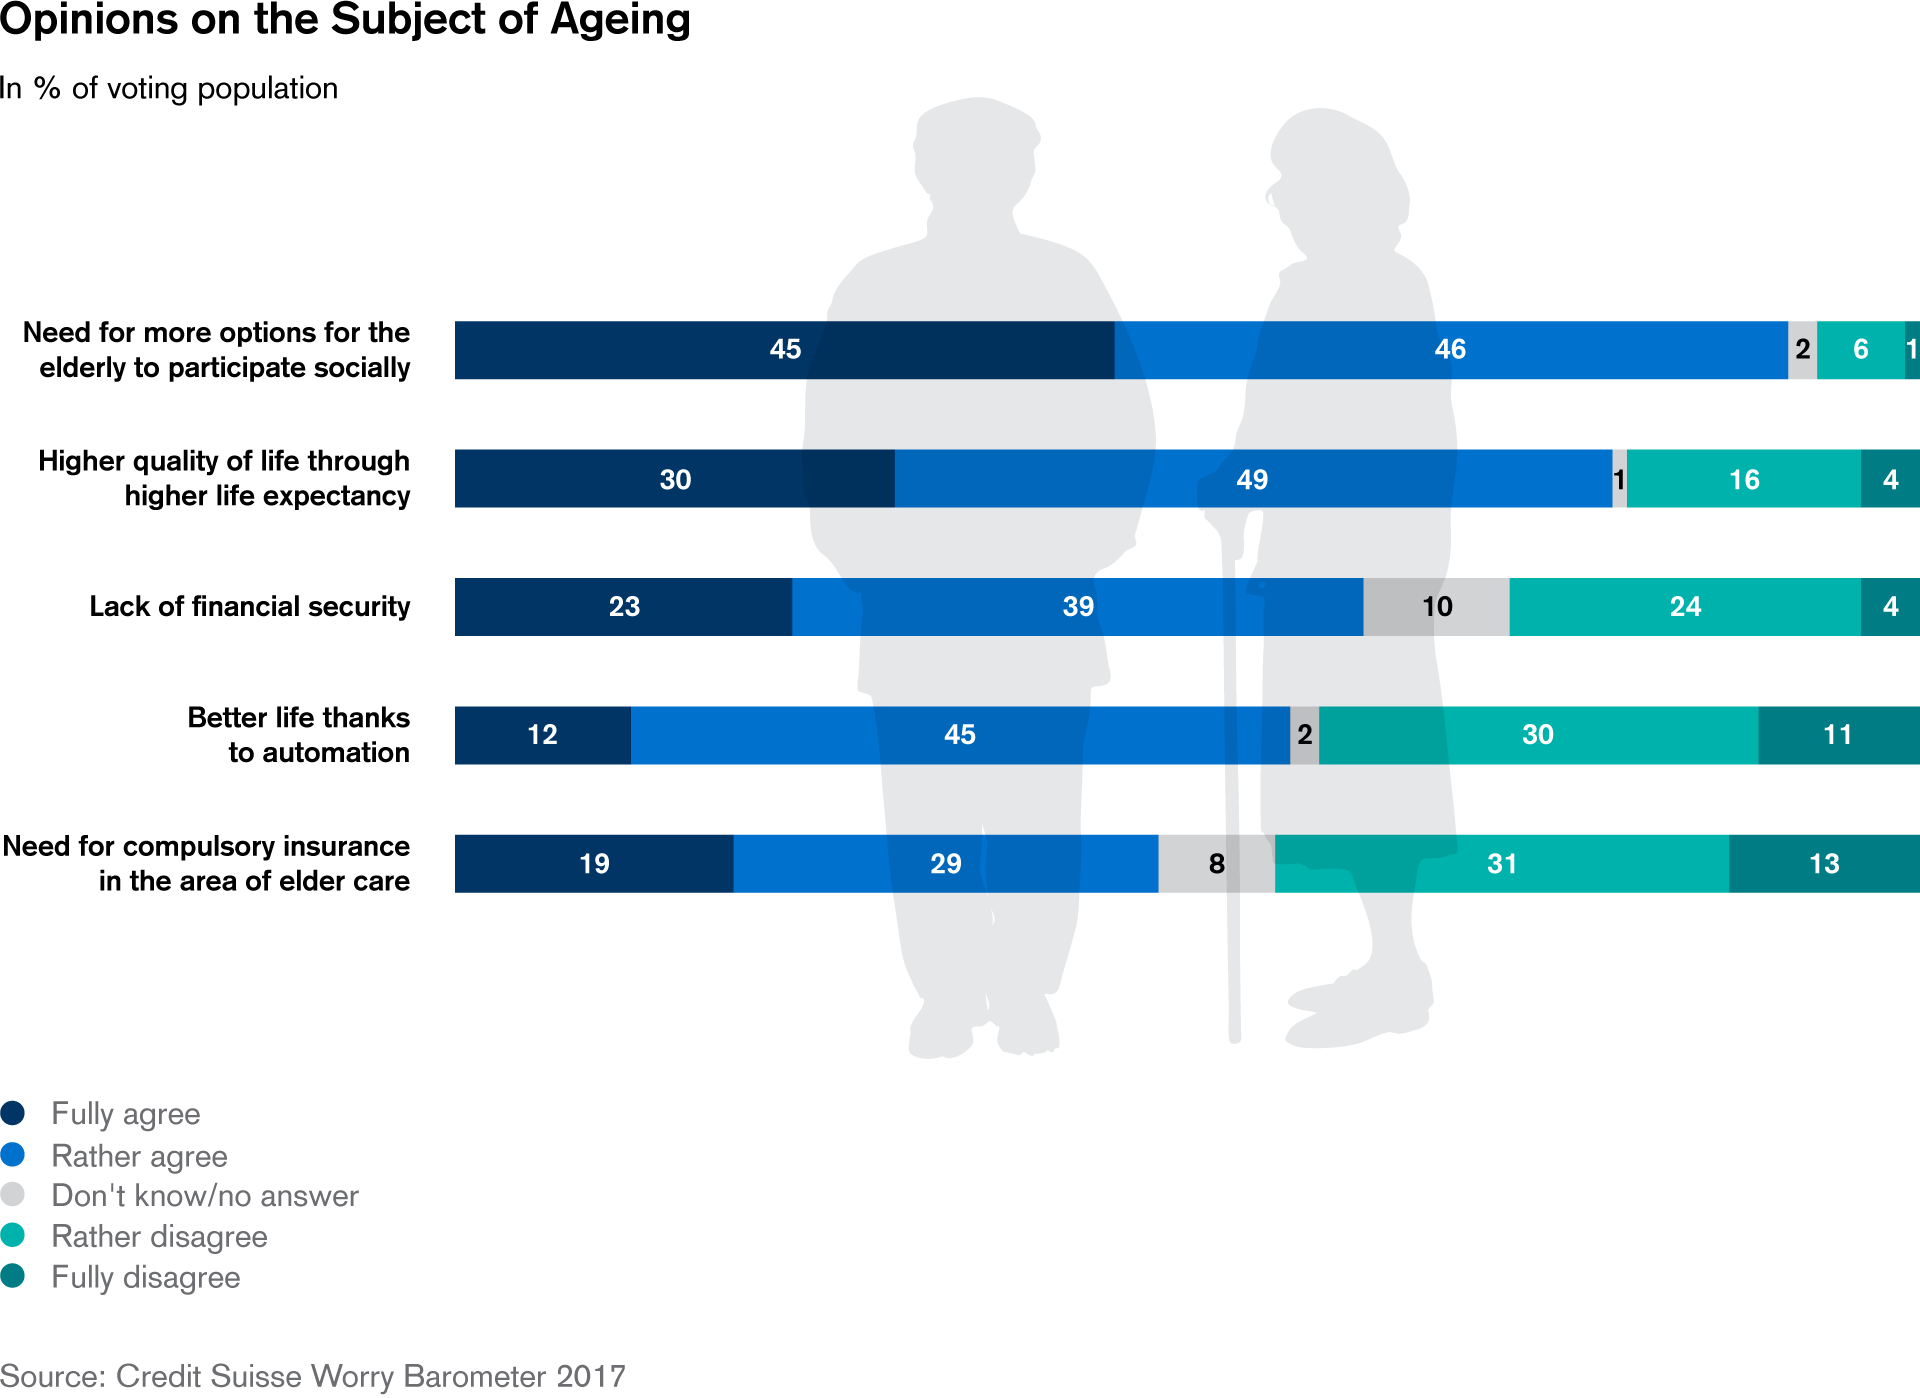 Opinions on the Subject of Ageing